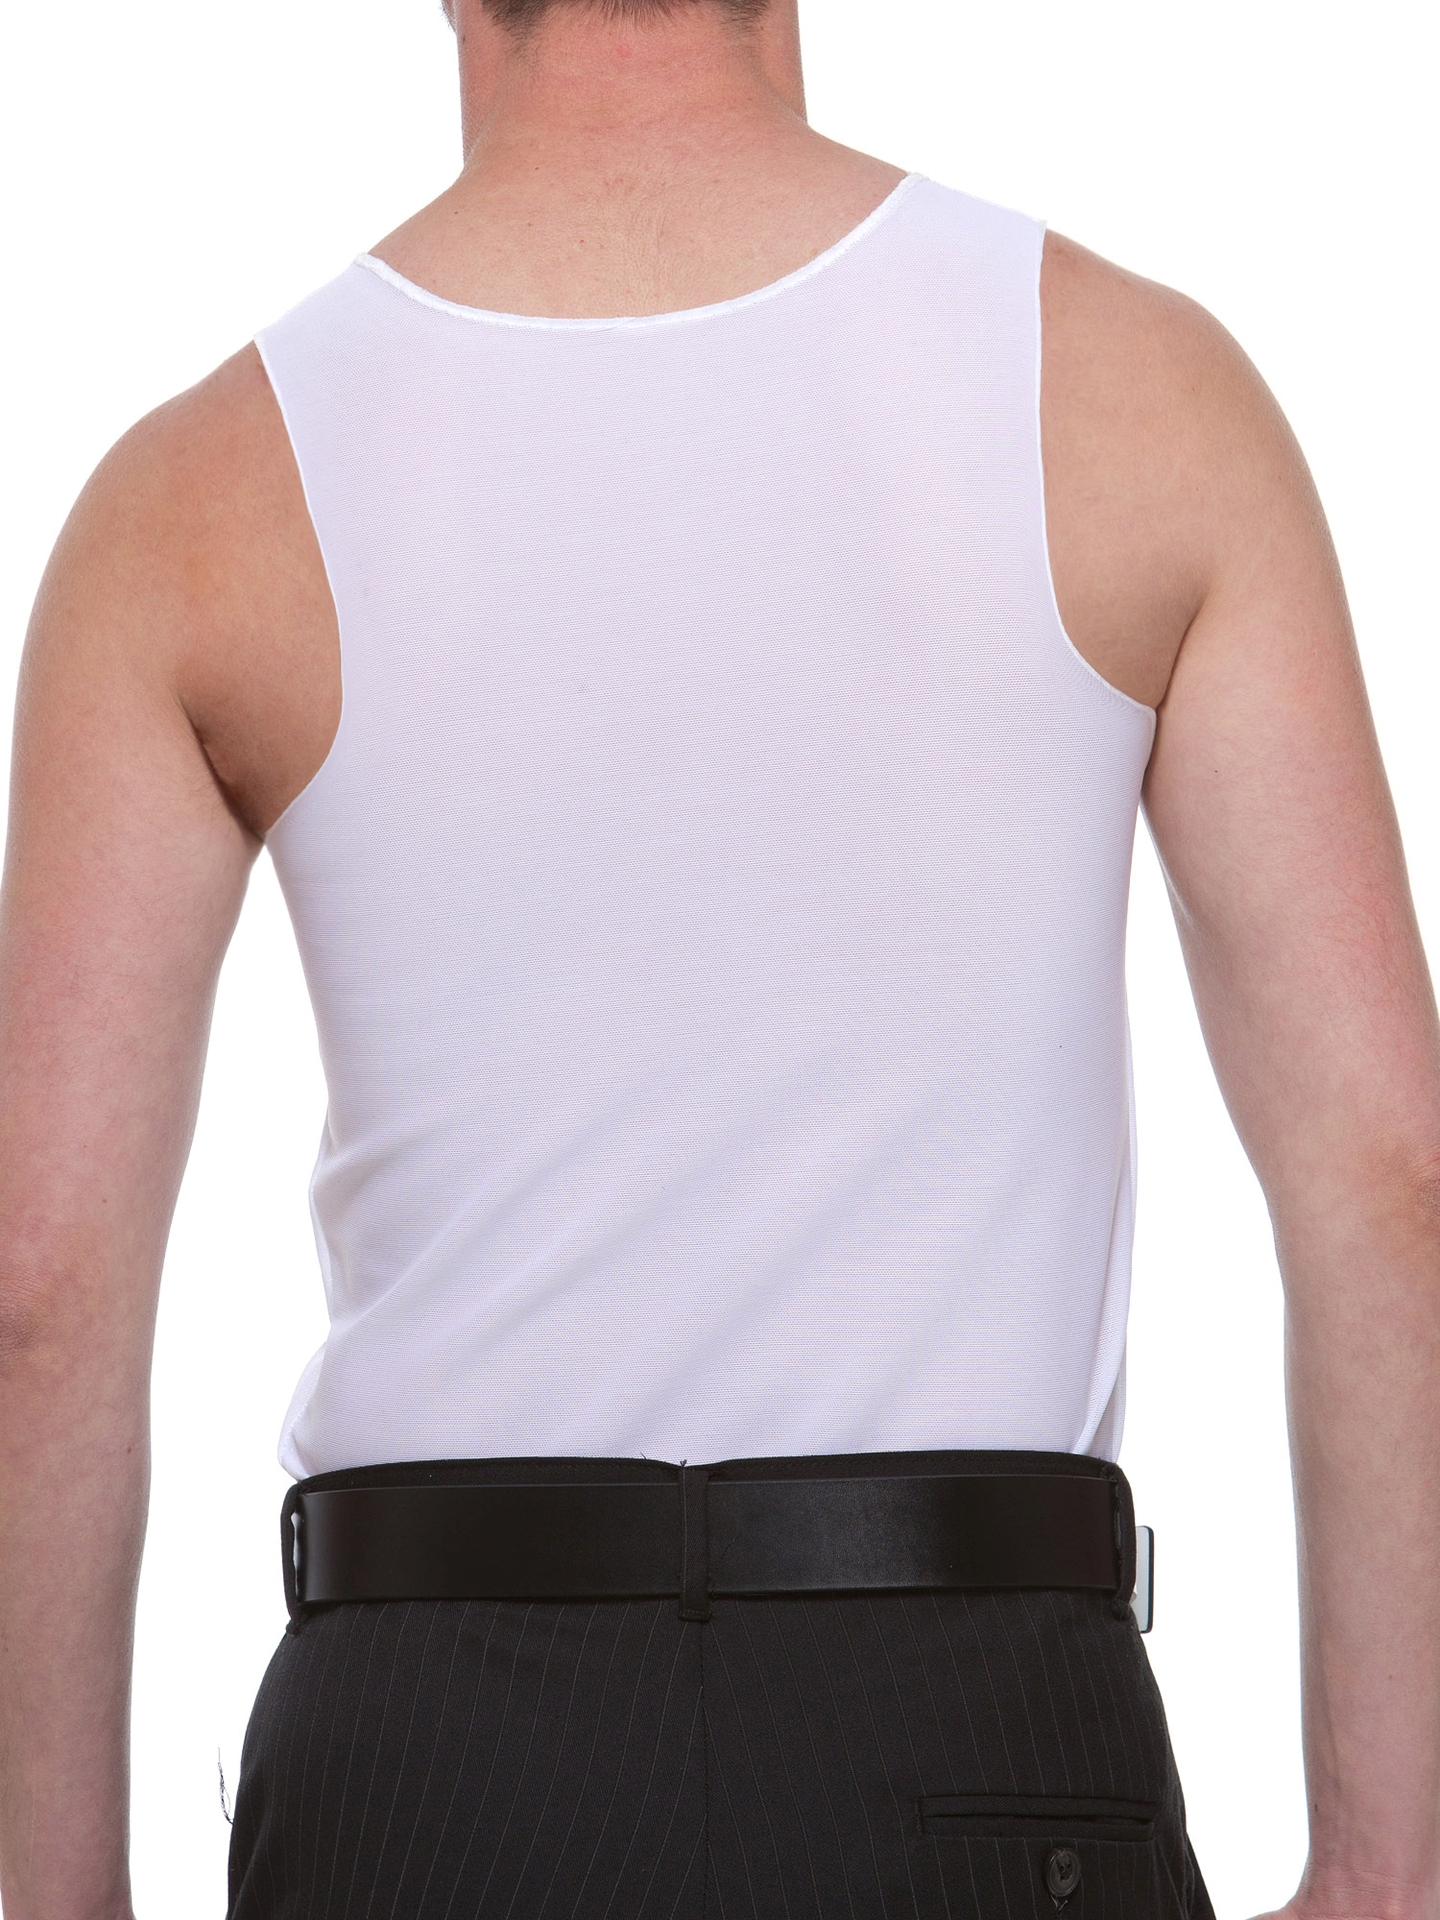 Underworks FTM Cotton Lined Power Chest Binder Compression Tank for trans people